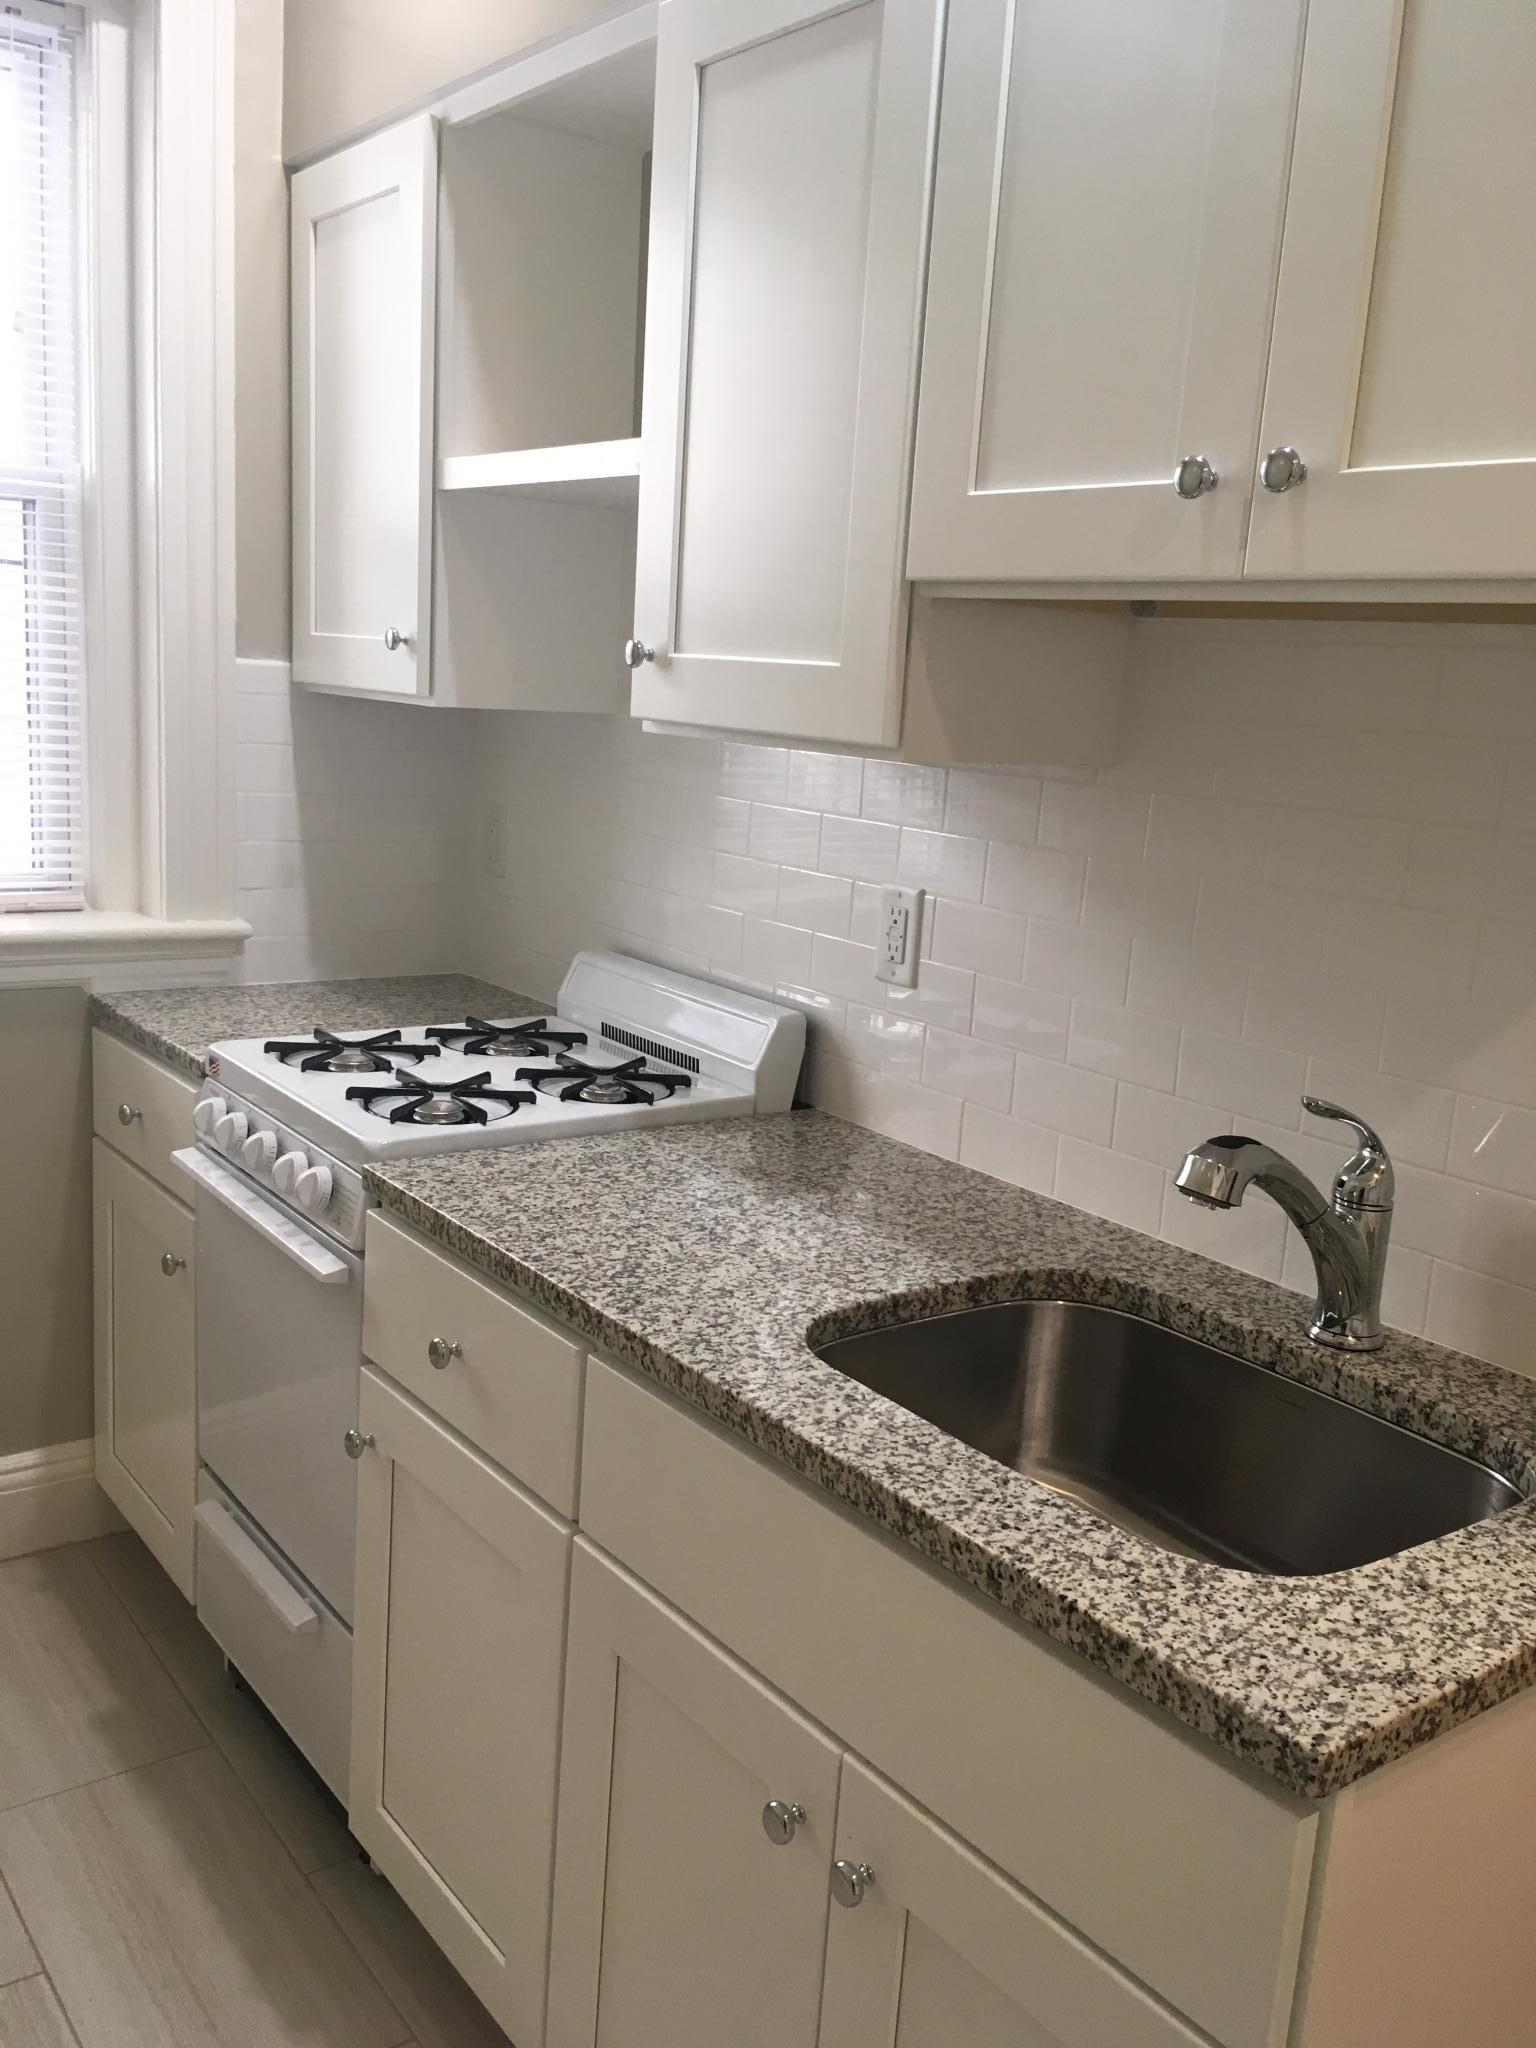 large studio  in  Mission area  heat and hot water included